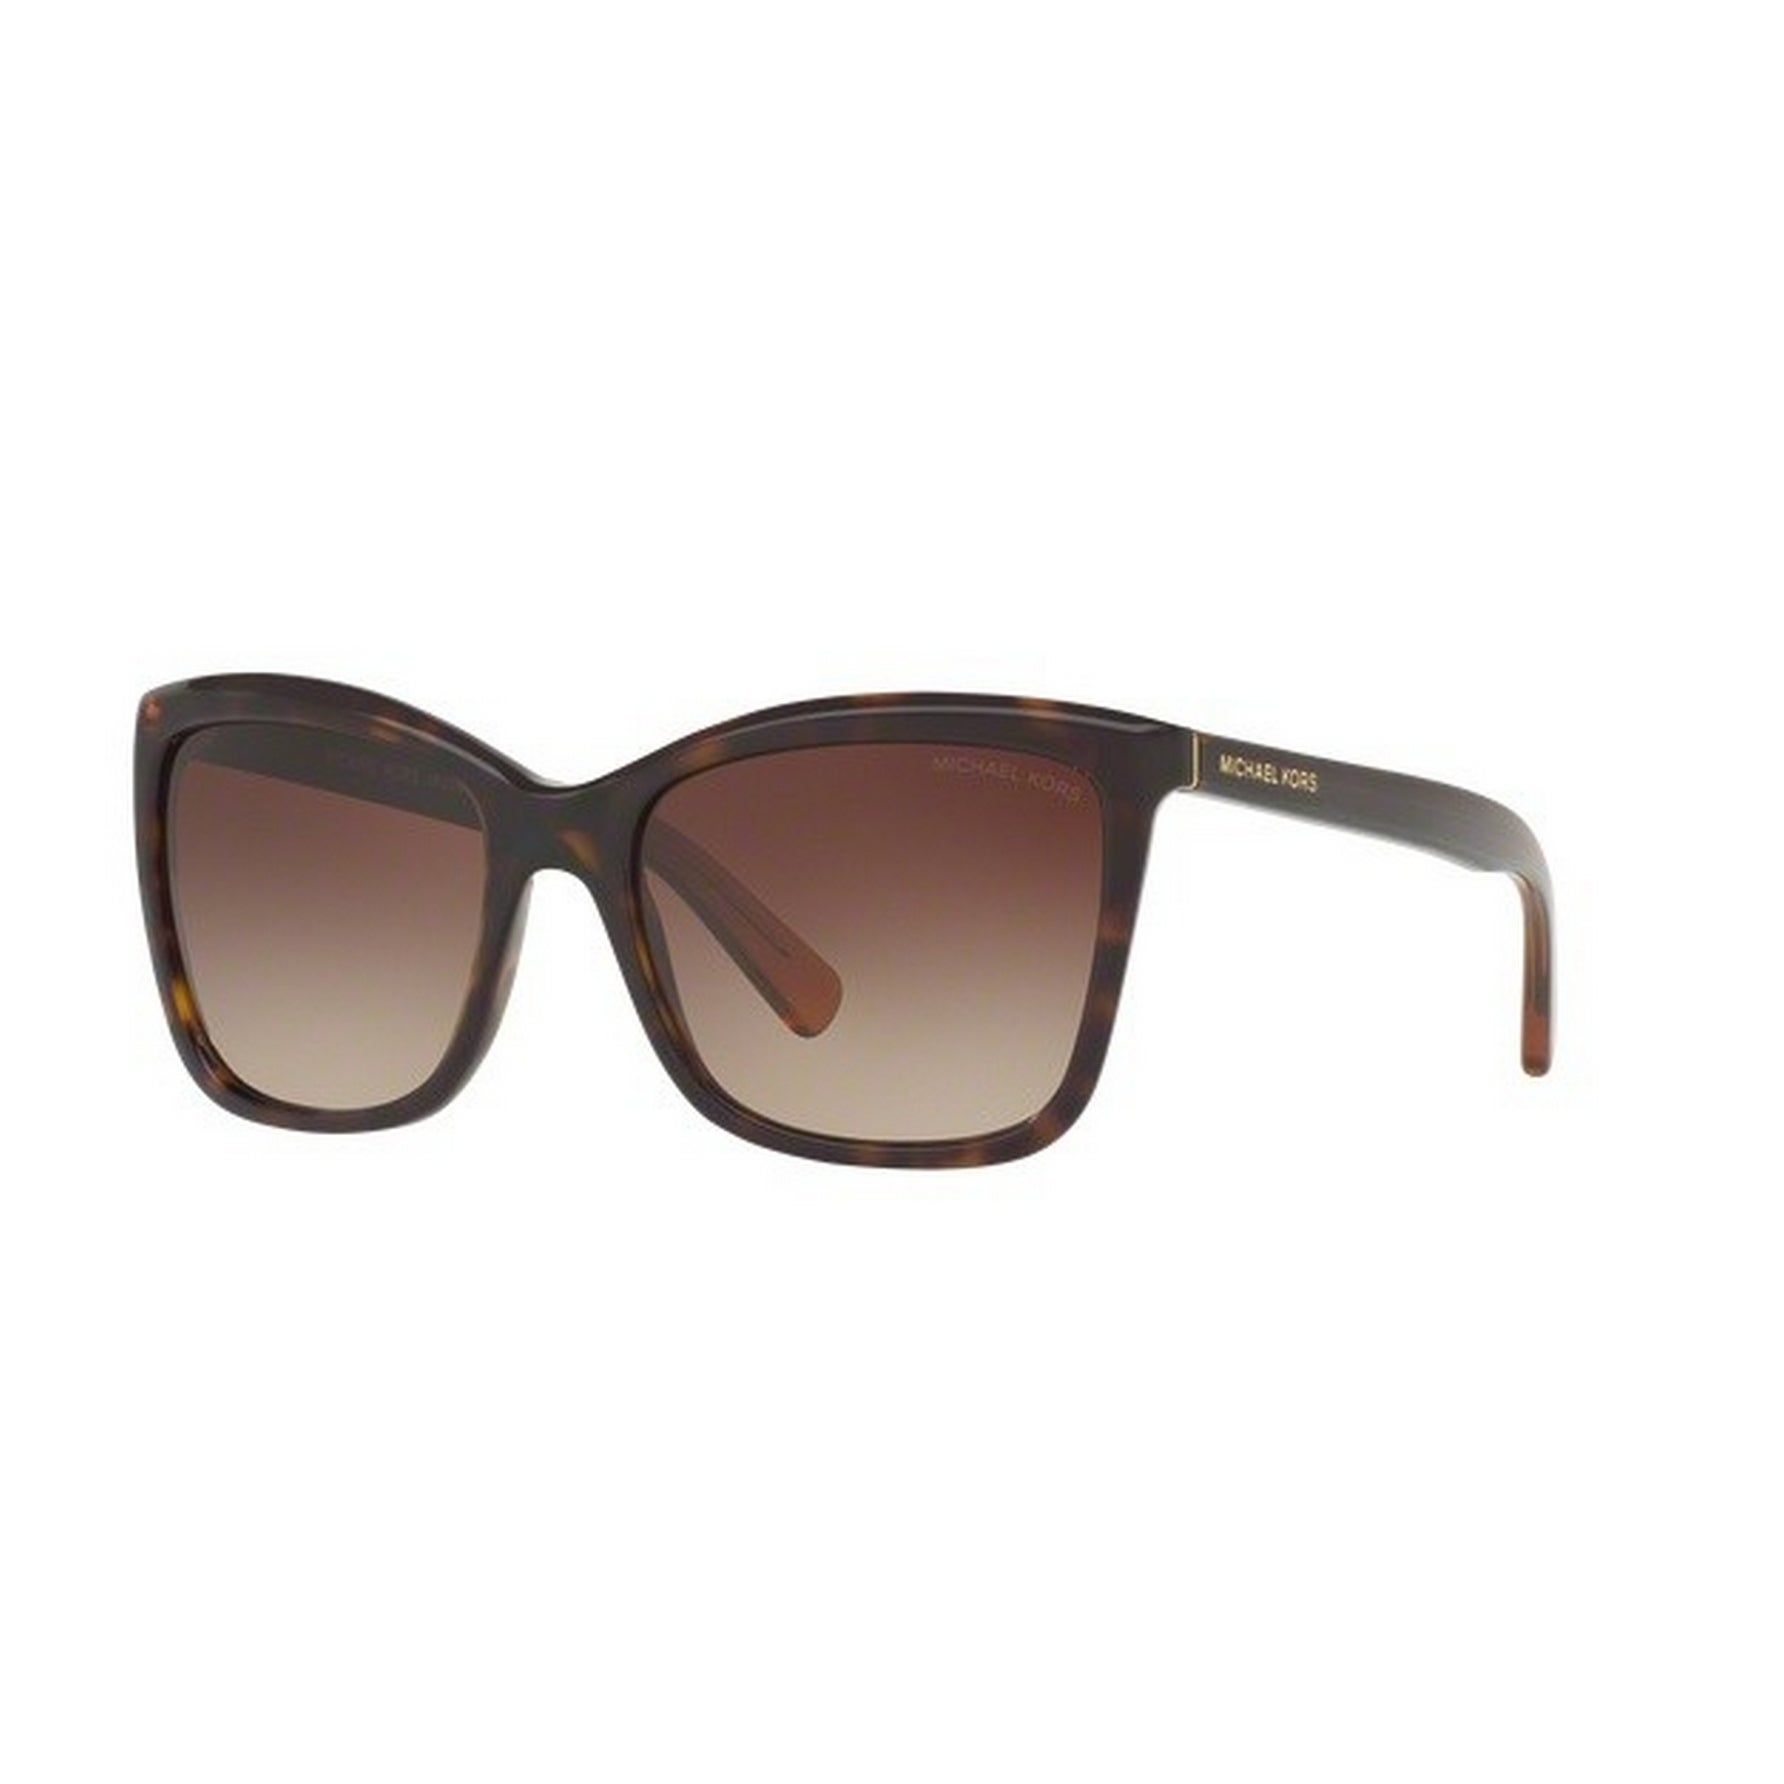 bdb1be1f74bc Shop Michael Kors Women's MK2039F 321713 55 Square Plastic Havana Smoke  Sunglasses - Free Shipping Today - Overstock - 14692731